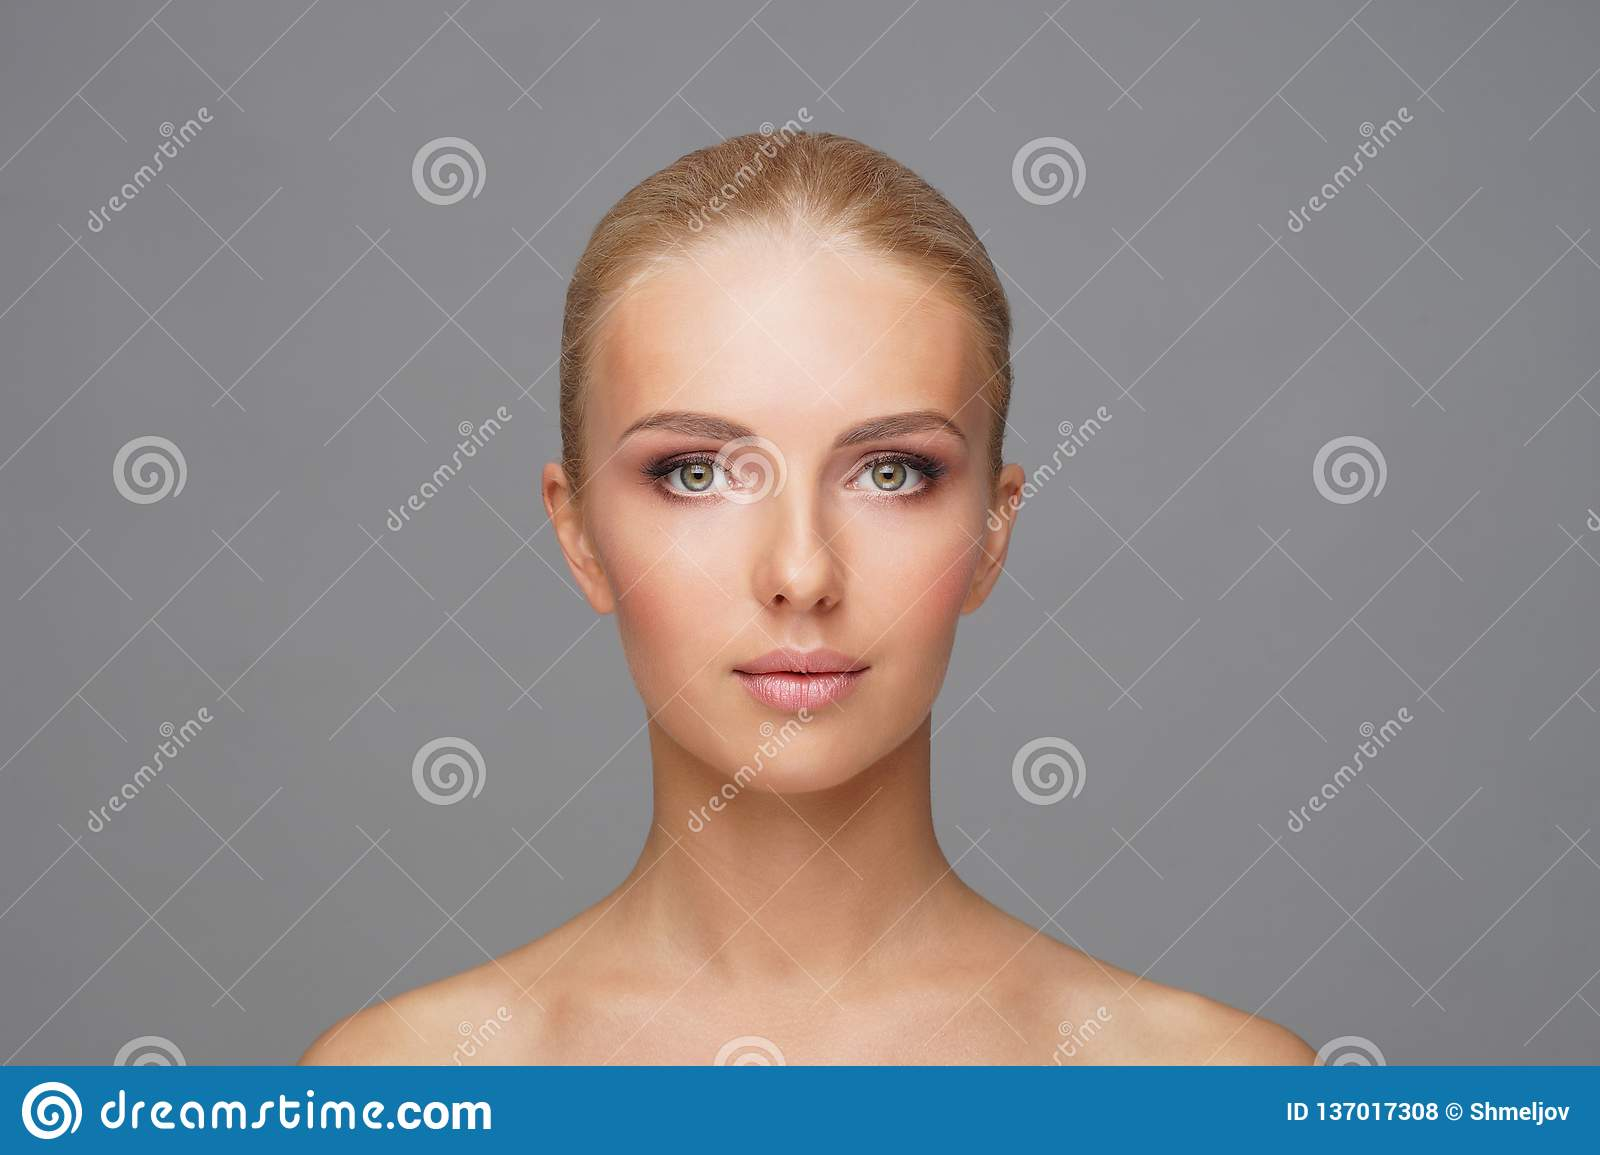 Beautiful face of young and healthy girl. Skin care, cosmetics and face lifting concept.